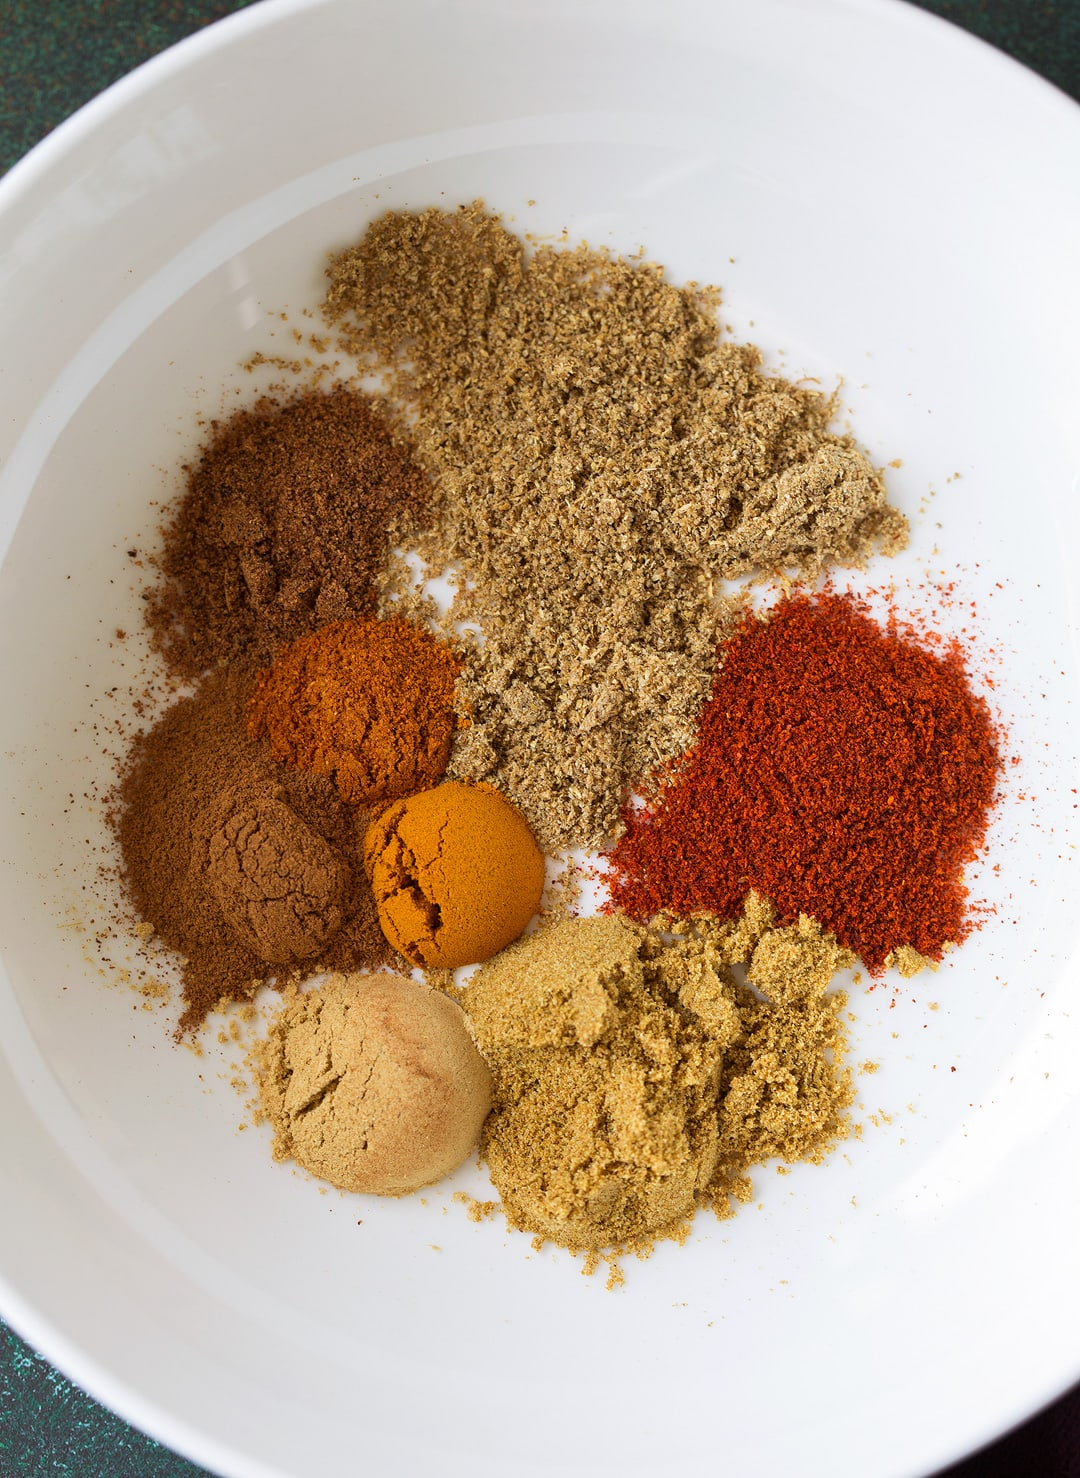 Spices shown here in a bowl for Moroccan Spiced Salmon with Lemon Yogurt Sauce